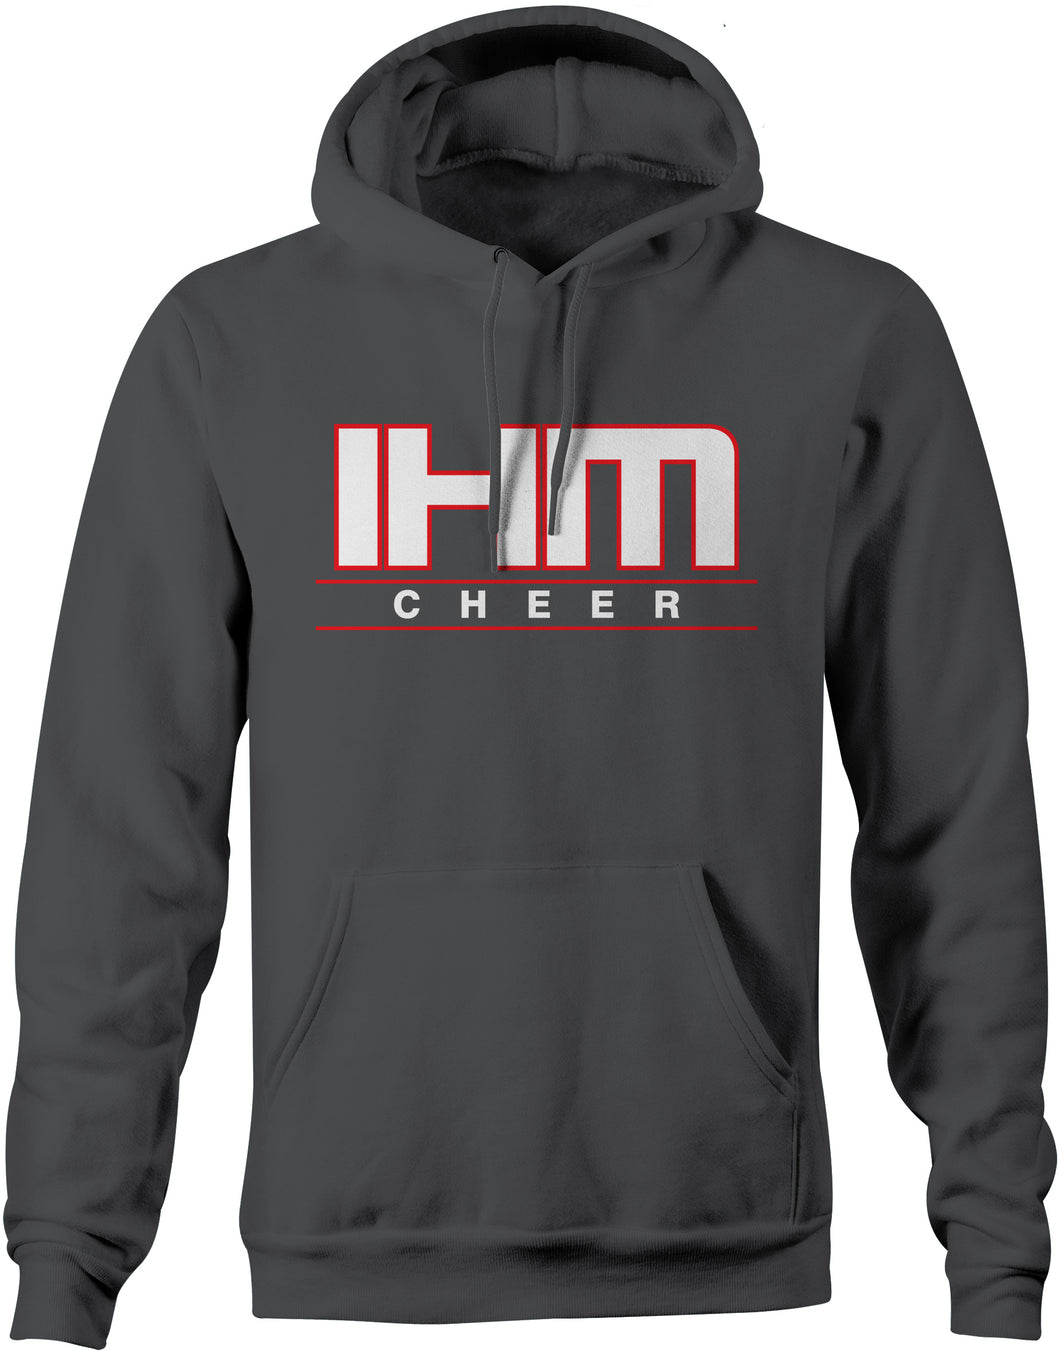 Graphite Cheer Performance Hoodie